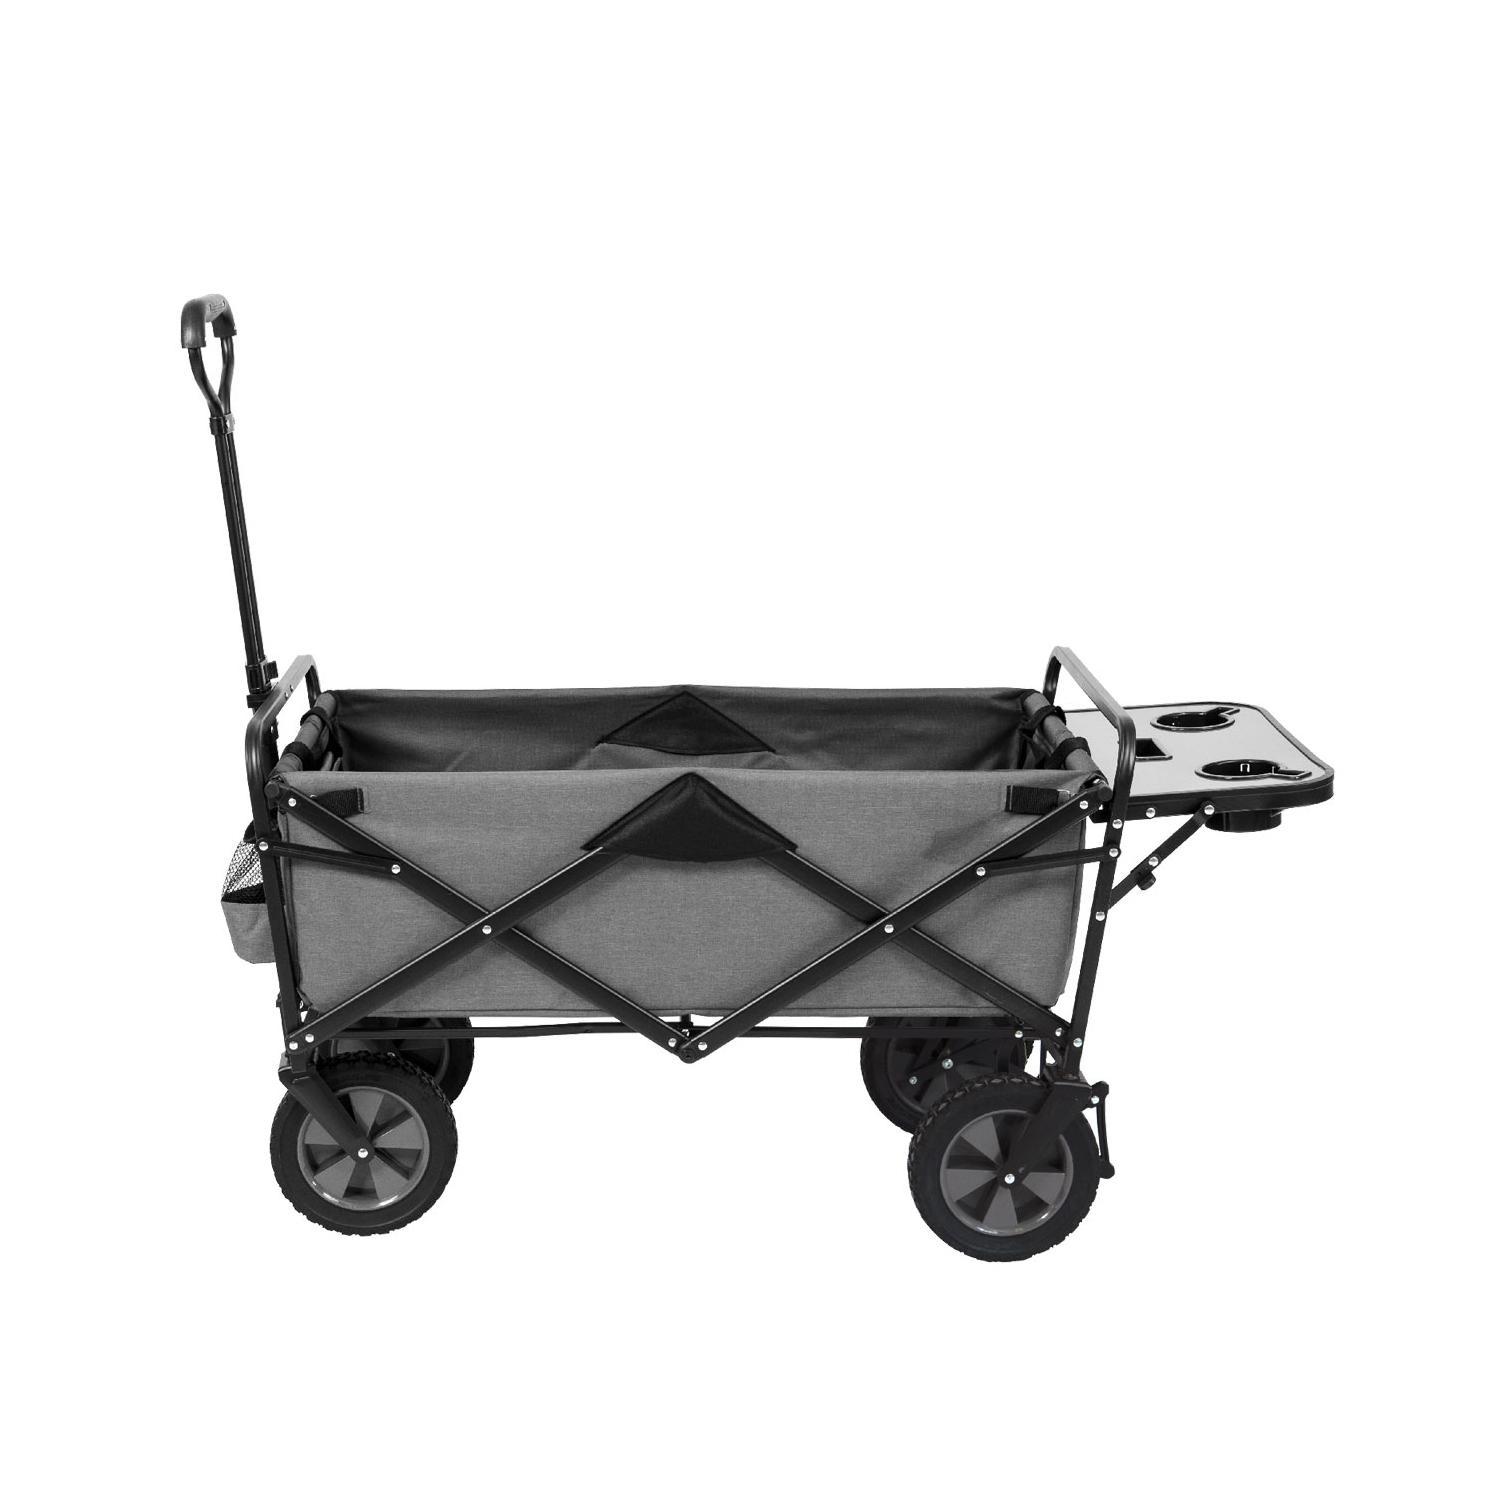 f5cba8c5a9f0 $54.98 Folding Wagon with Table - dealepic .